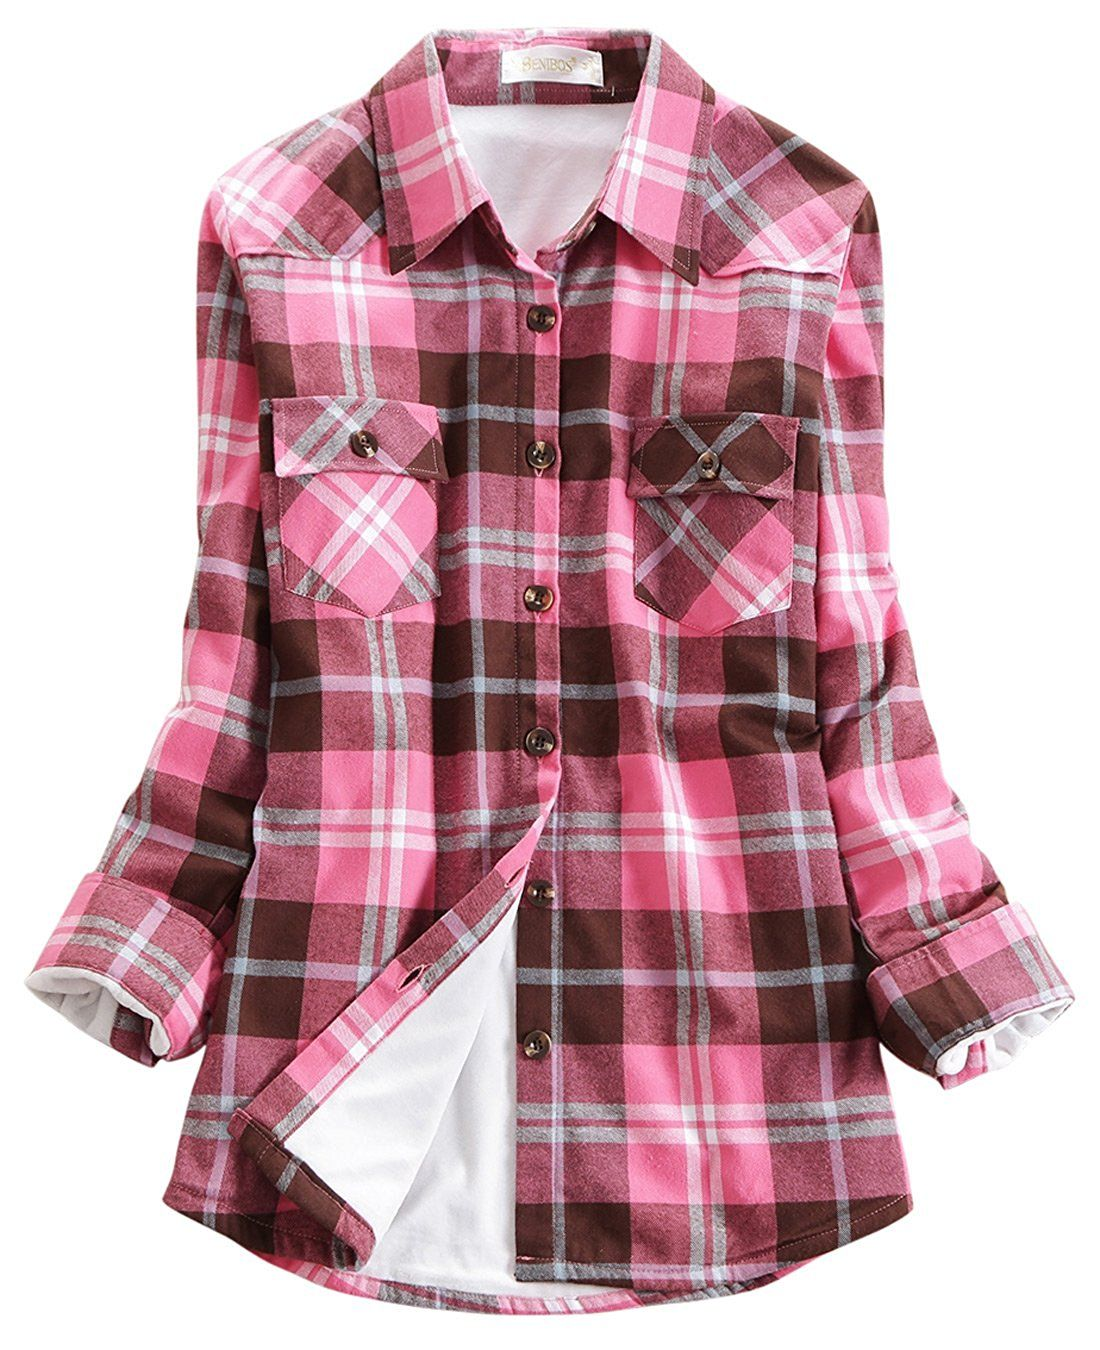 Fleece vs flannel  Chouyatou Womenus Winter Fleece Lined Plaid Flannel Buttoned Shirt